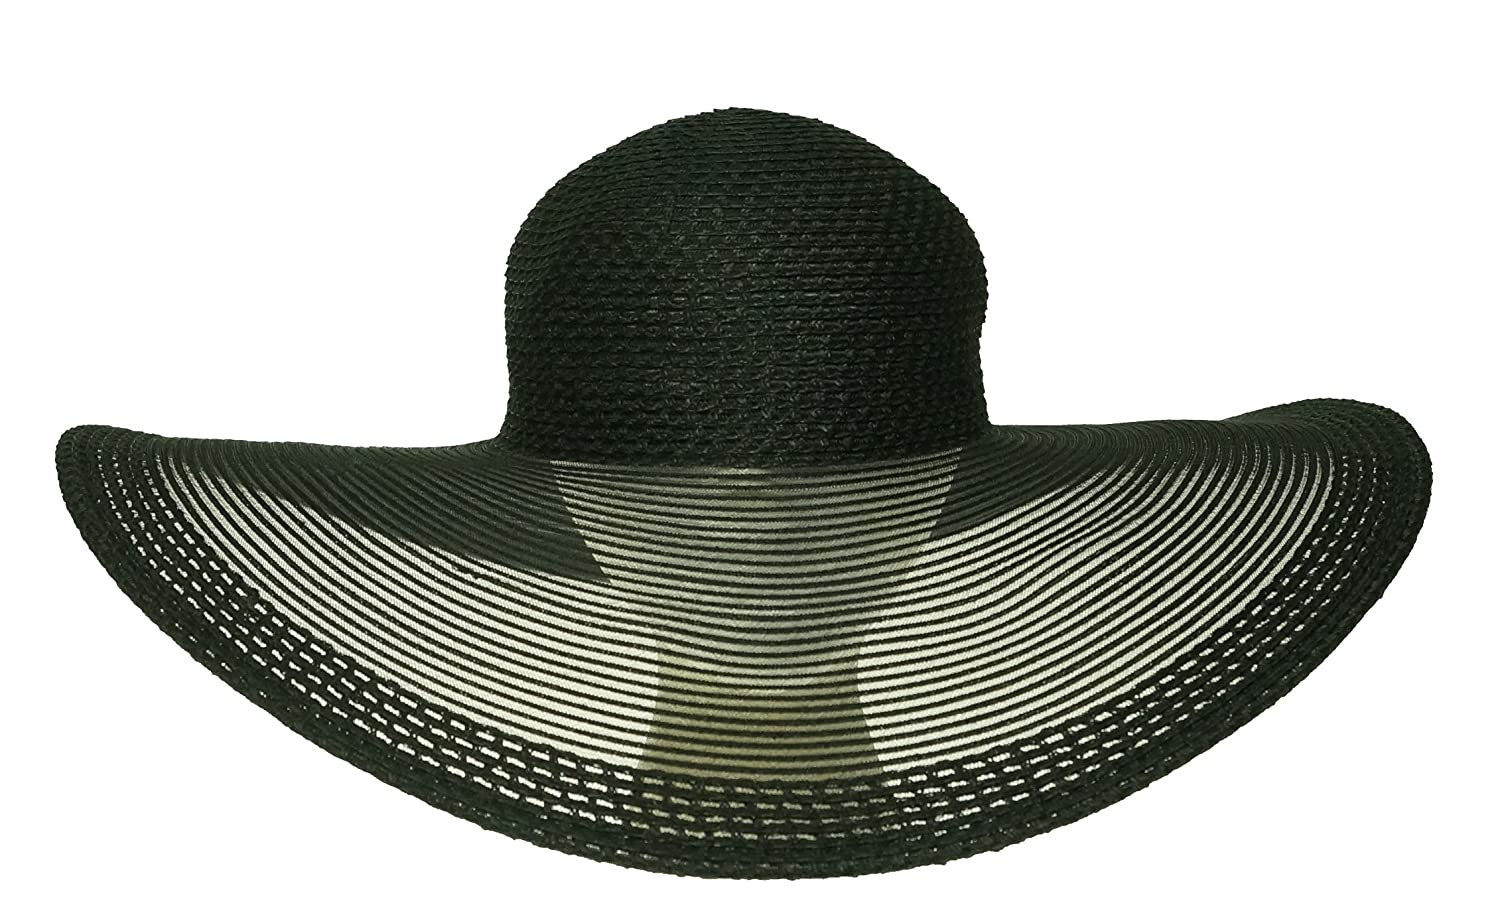 5b27374900a Nine West Women s Open Work Sheer Super Floppy Packable Hat Black One Size   Amazon.ca  Clothing   Accessories